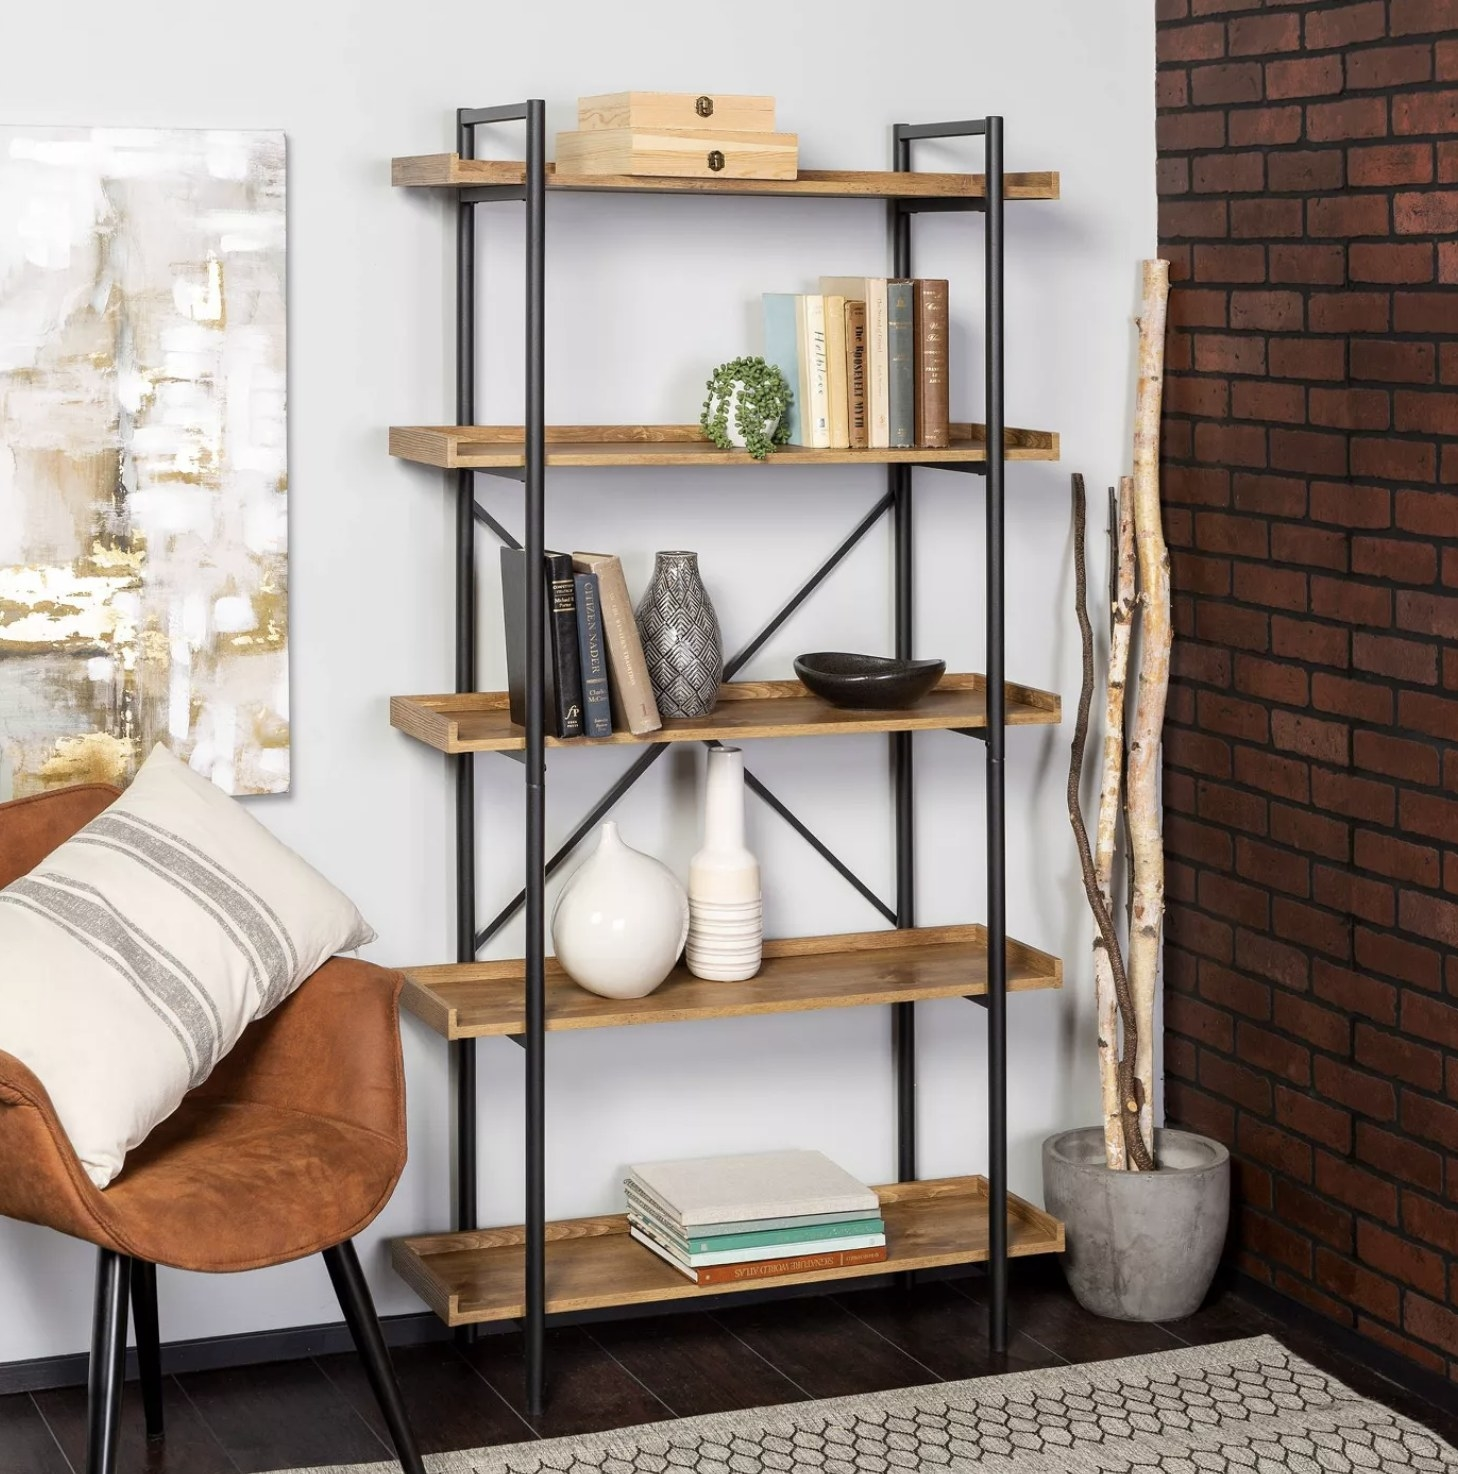 A light wood bookshelf with tray shelves and piping